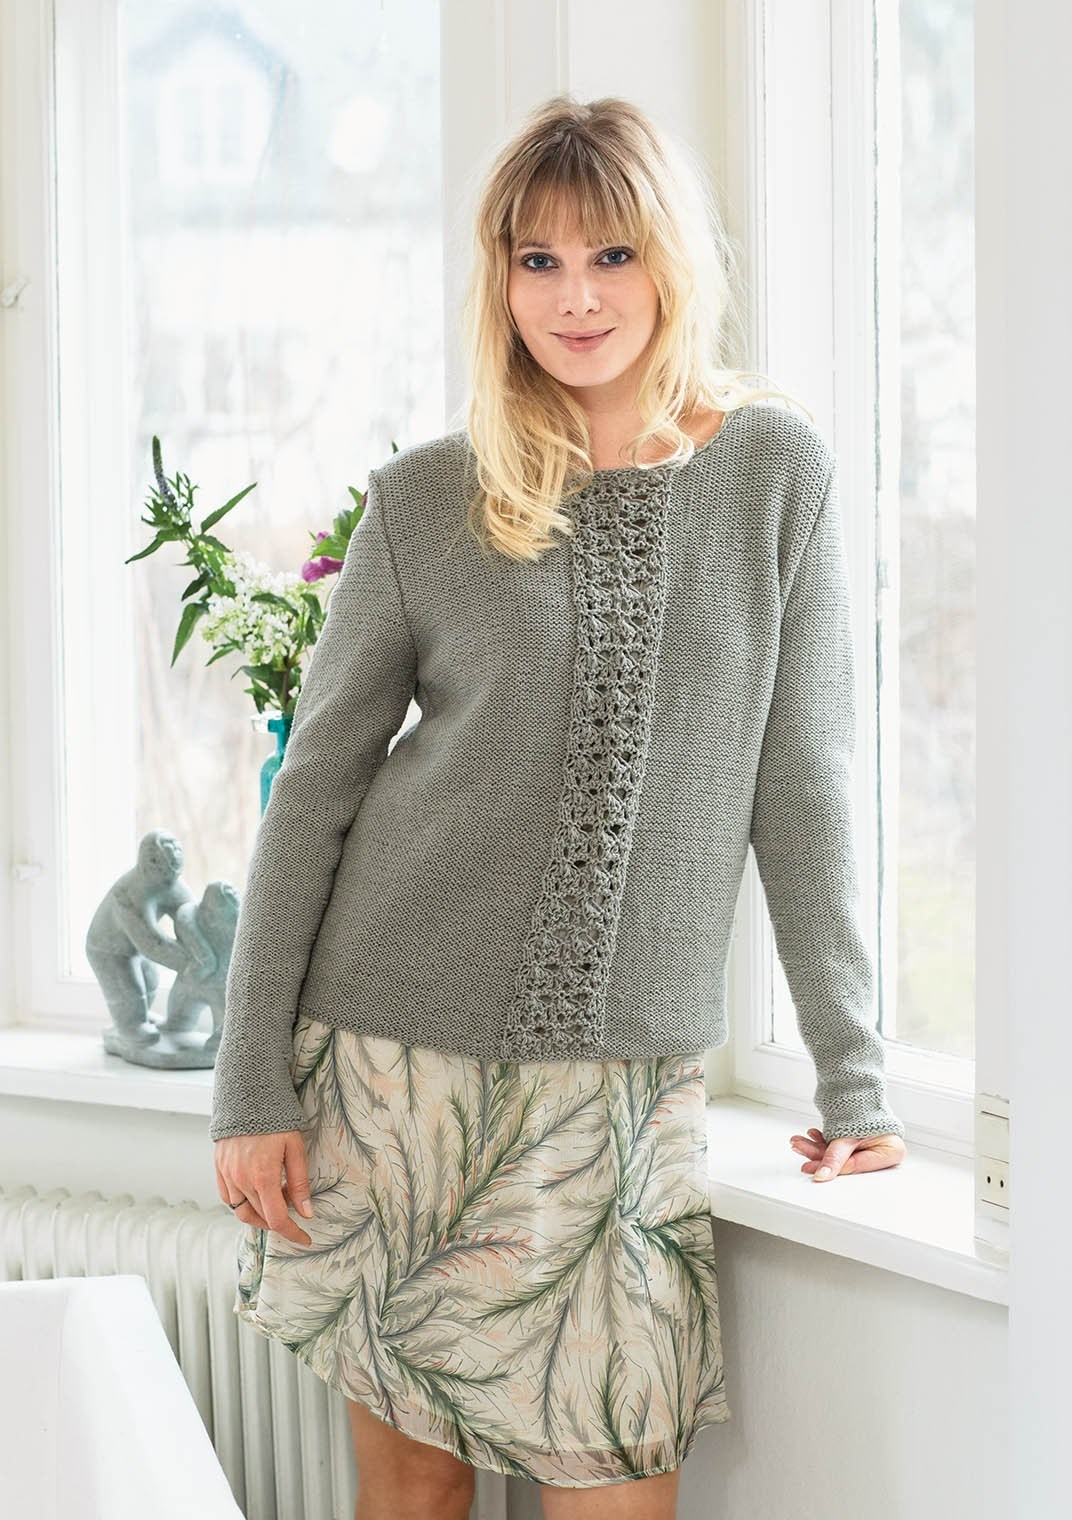 Sandnes strikkehæfte 1706 - model 13 Lacegenser (sweater)